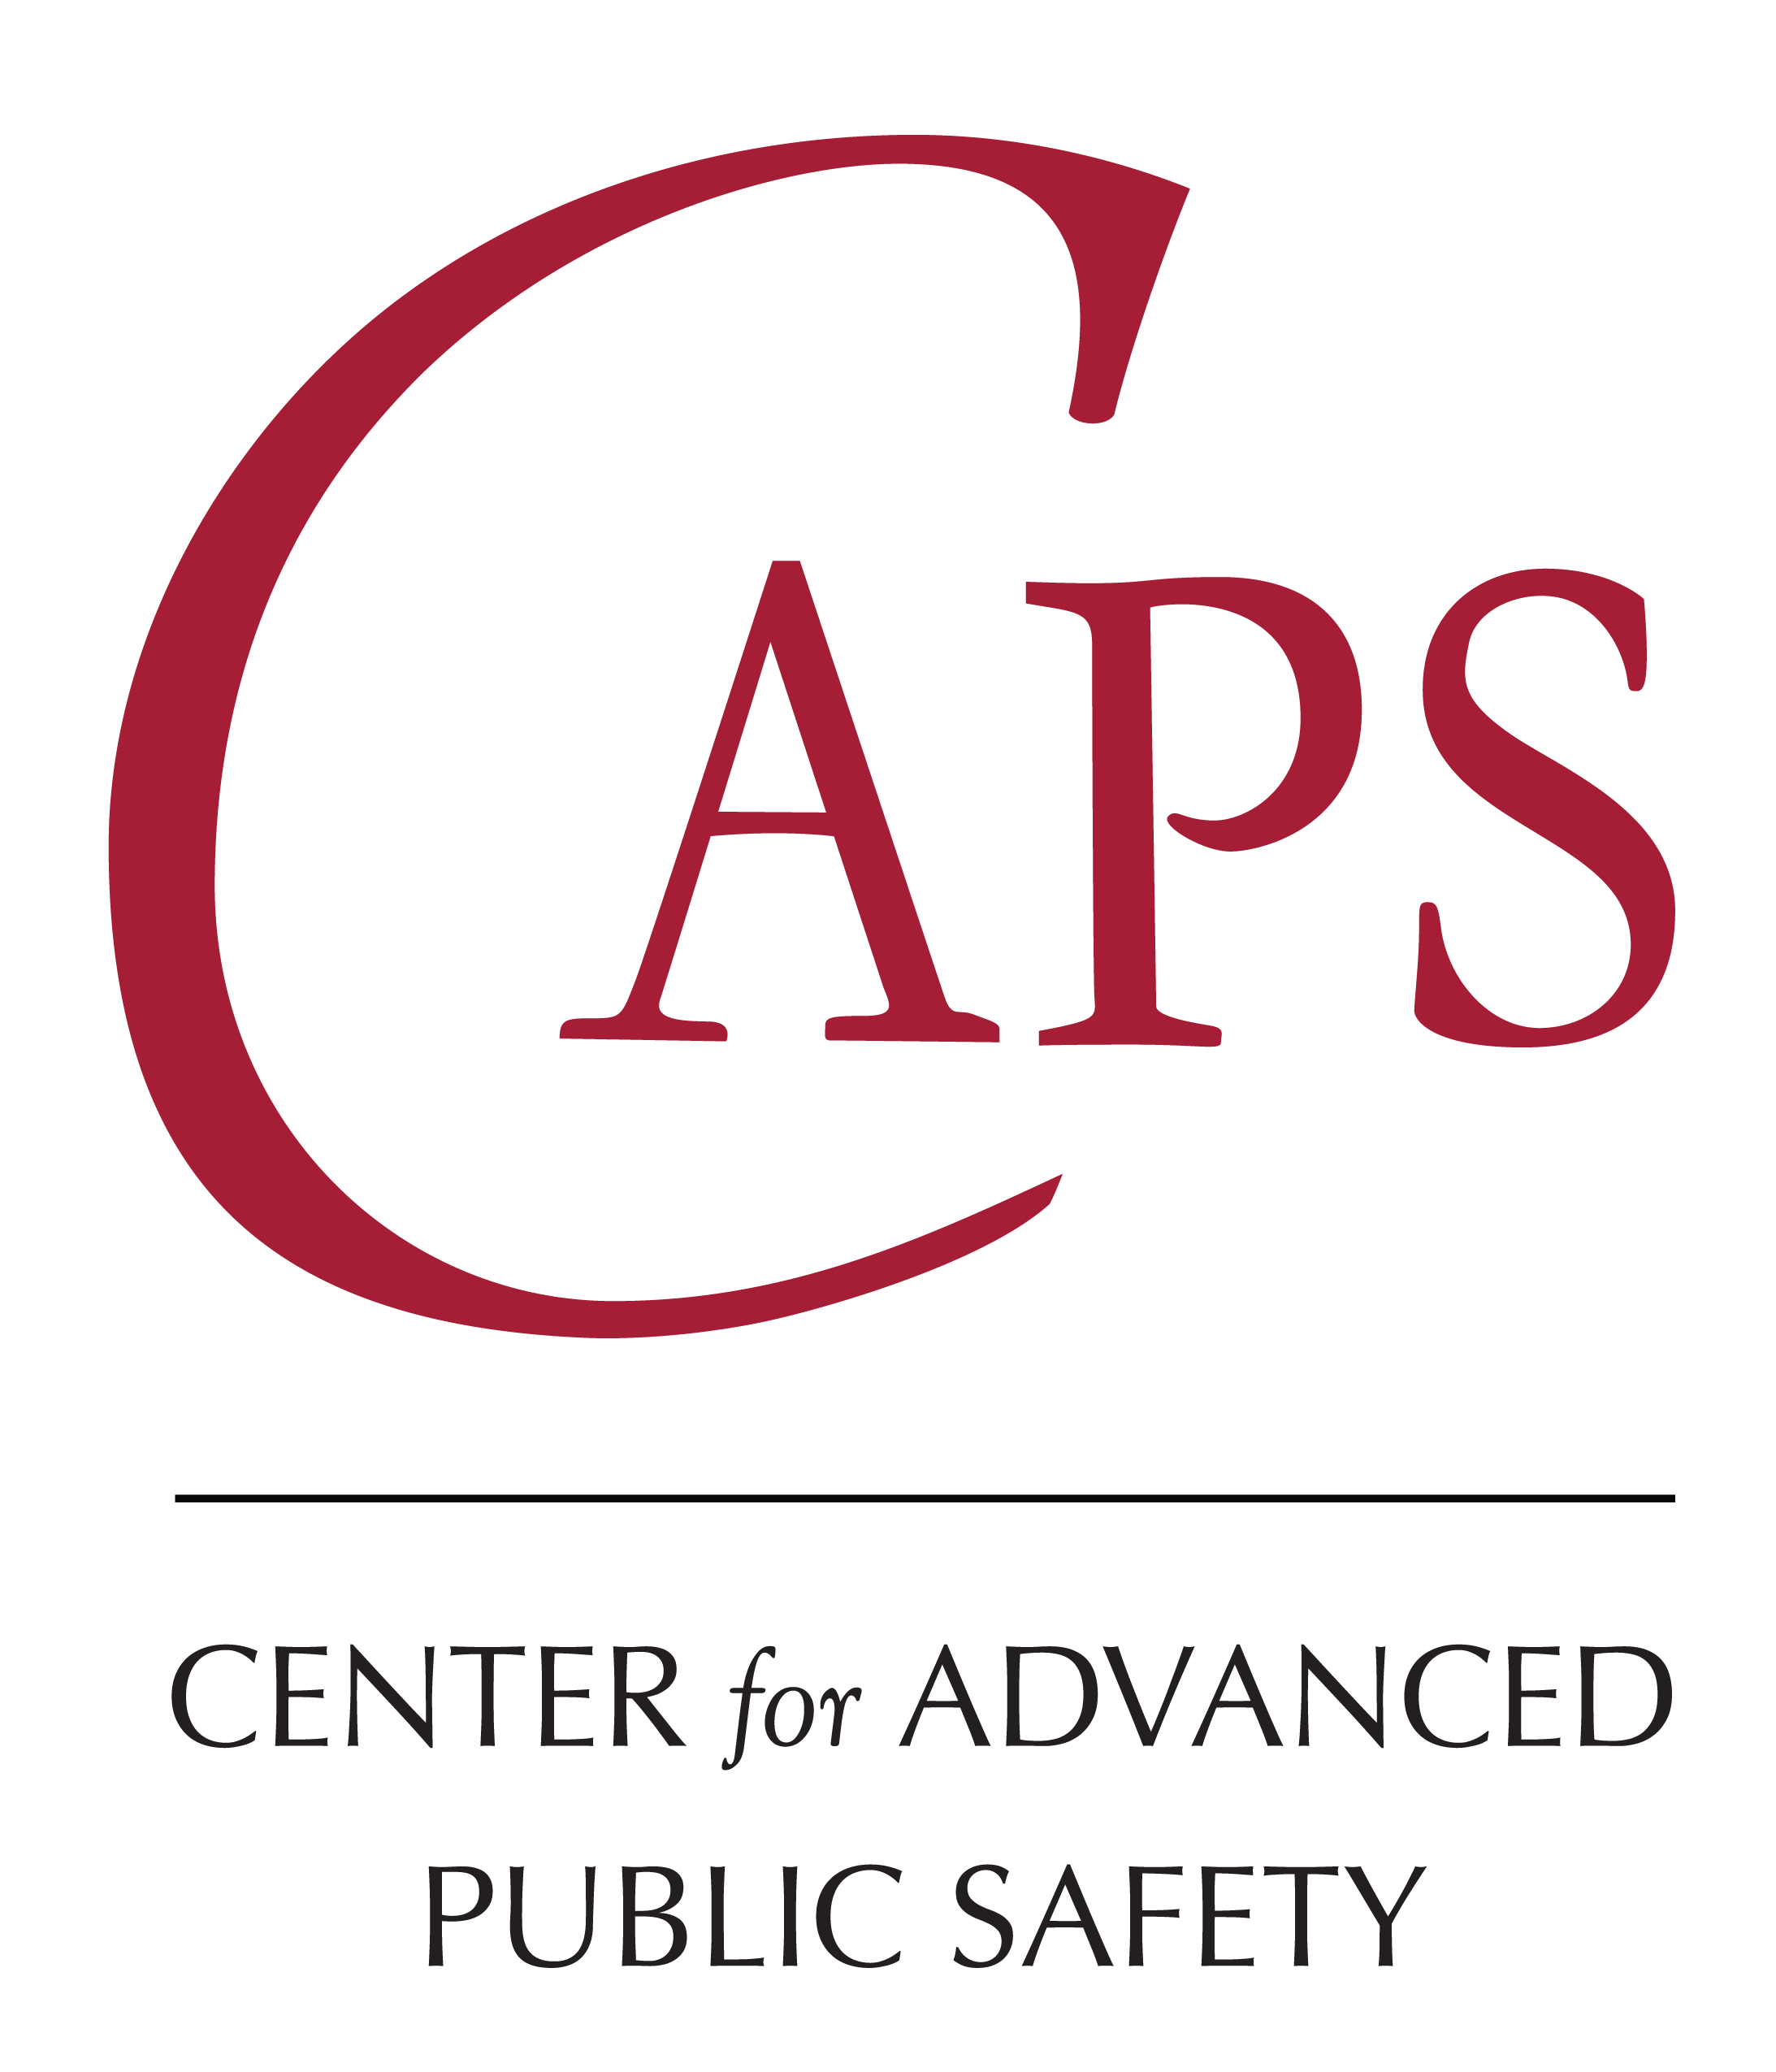 CAPS vertical logo